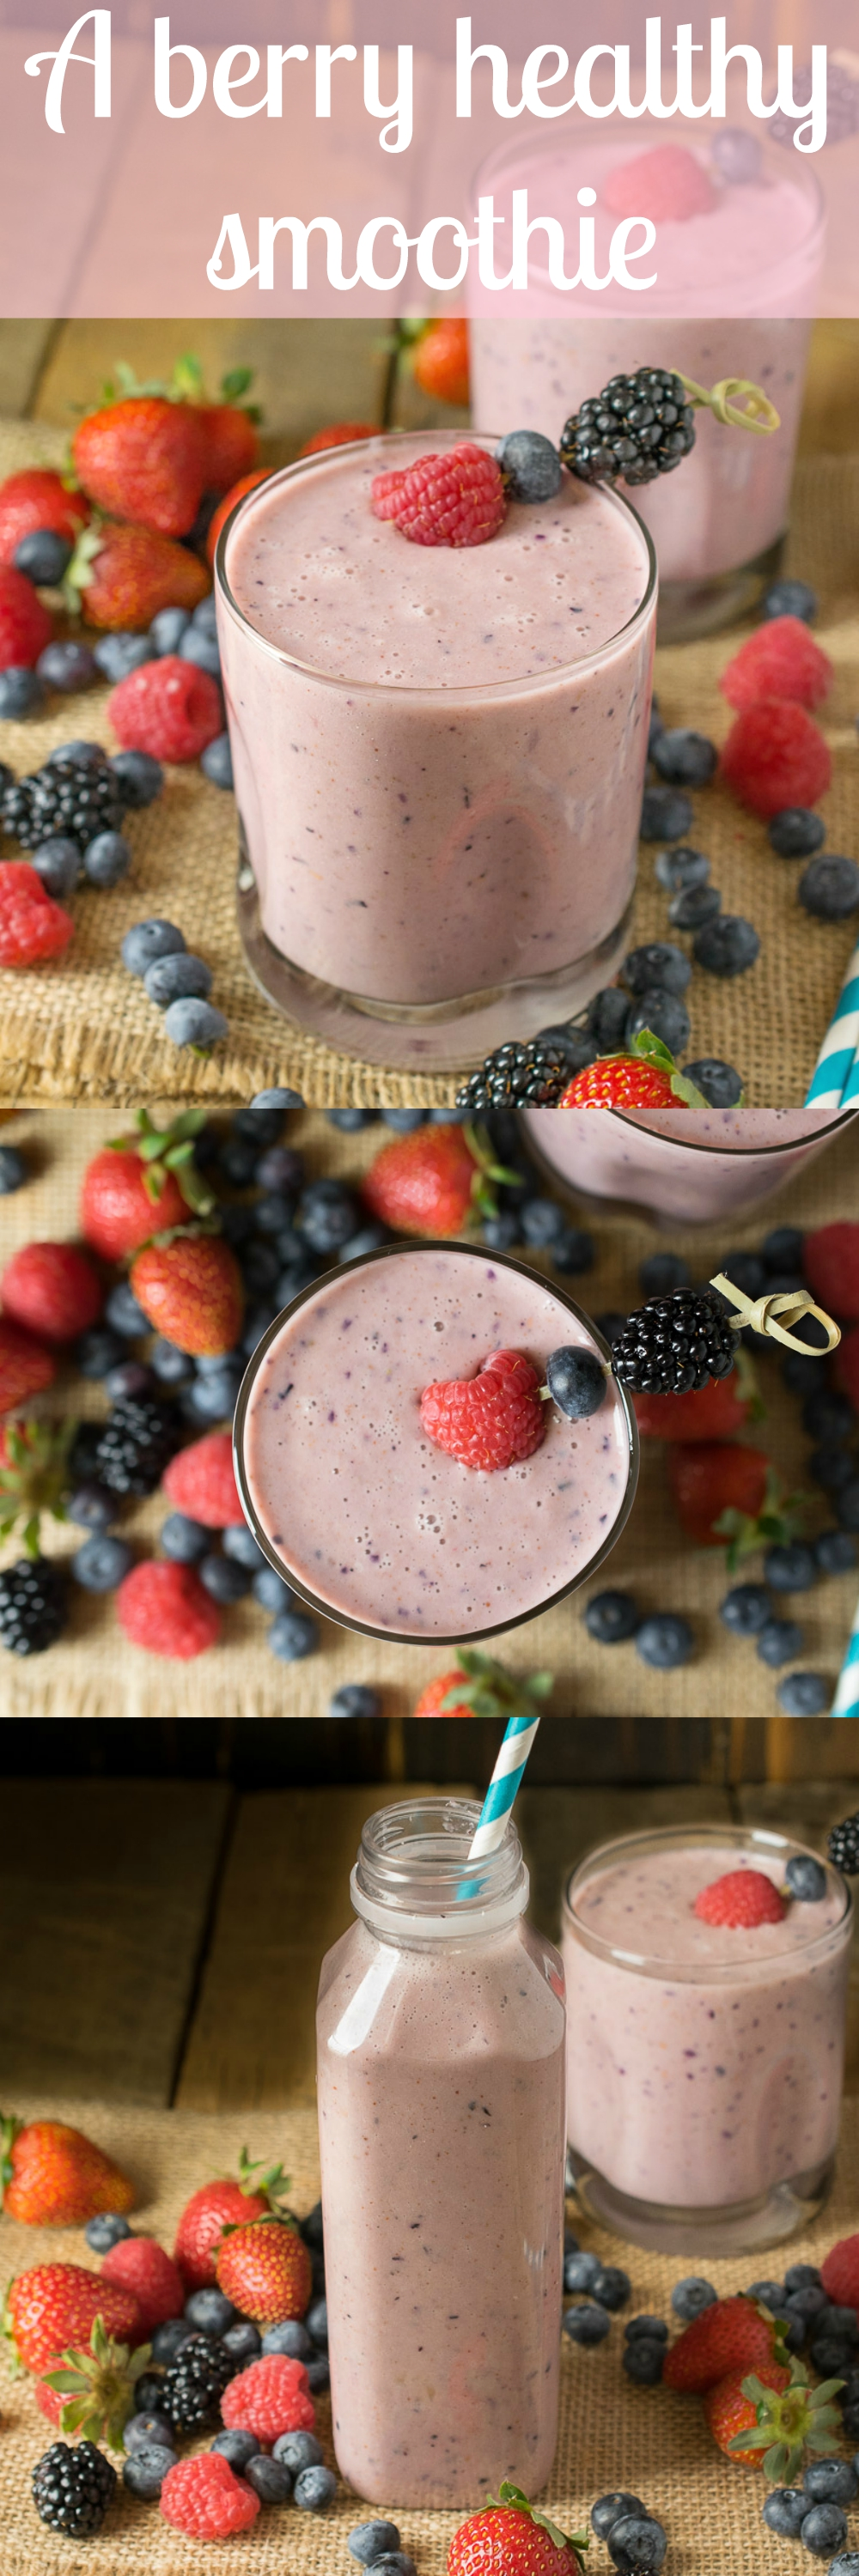 A berry healthy smoothie is aptly named because it is an all-berry smoothie with some other healthy ingredients in there too, for protein and nutrients. It's also 'berry healthy.'